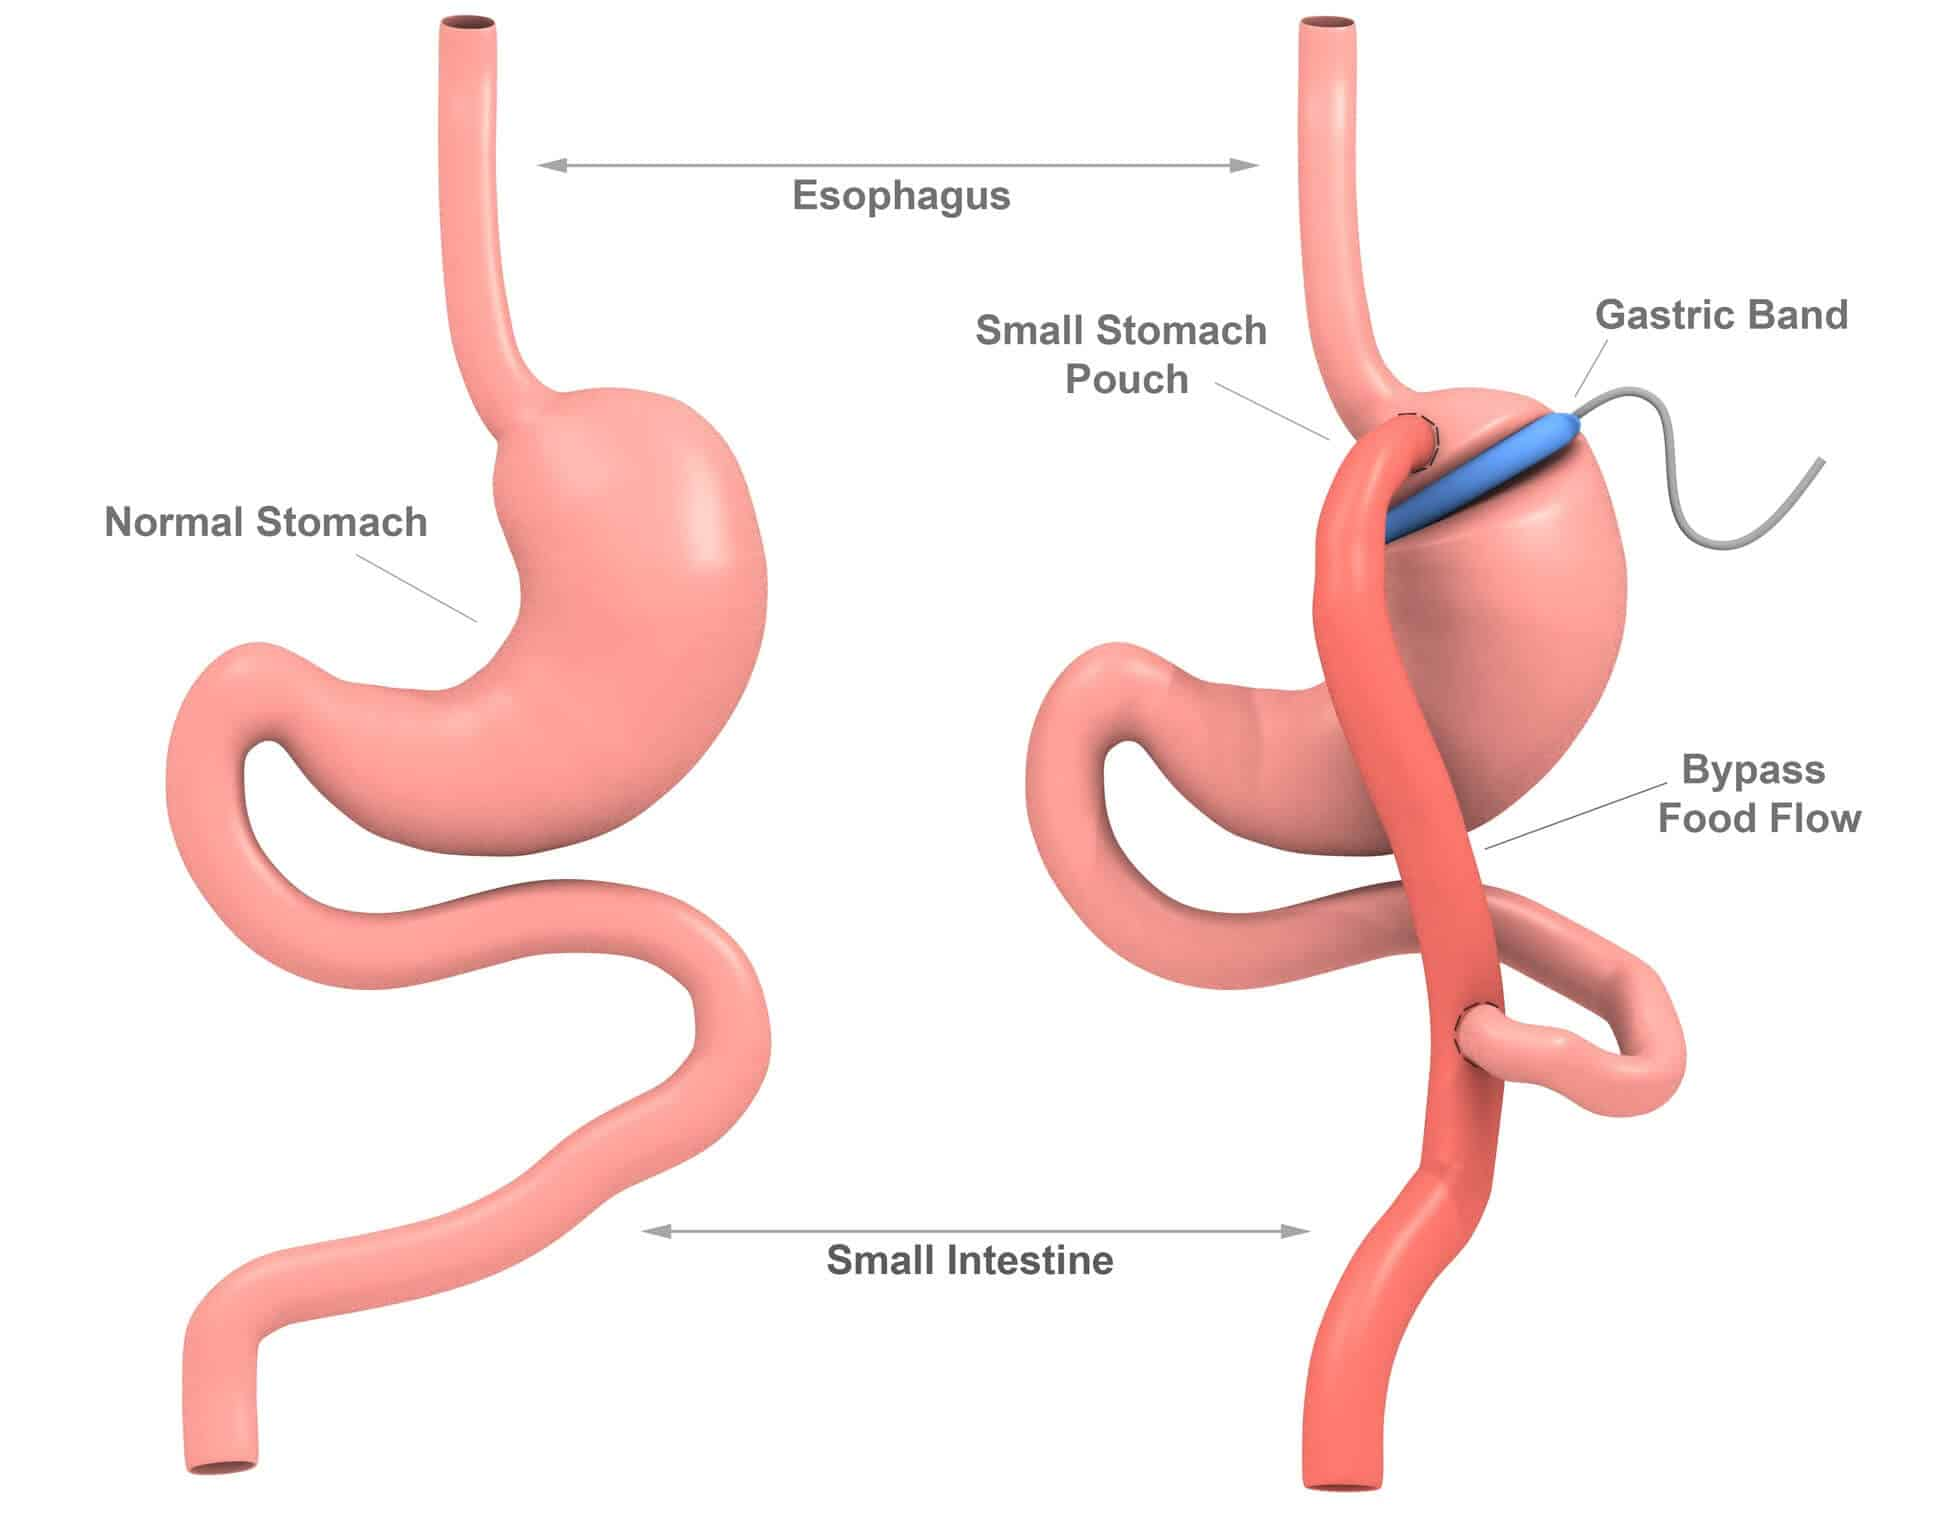 gastric bypass and gastric band Unlike the laparoscopic adjustable gastric band (lap band), these two operations are both permanent, reduce hunger, and lead to the highest percentage of weight loss to properly compare gastric sleeve surgery to gastric bypass surgery we will examine the following data :.